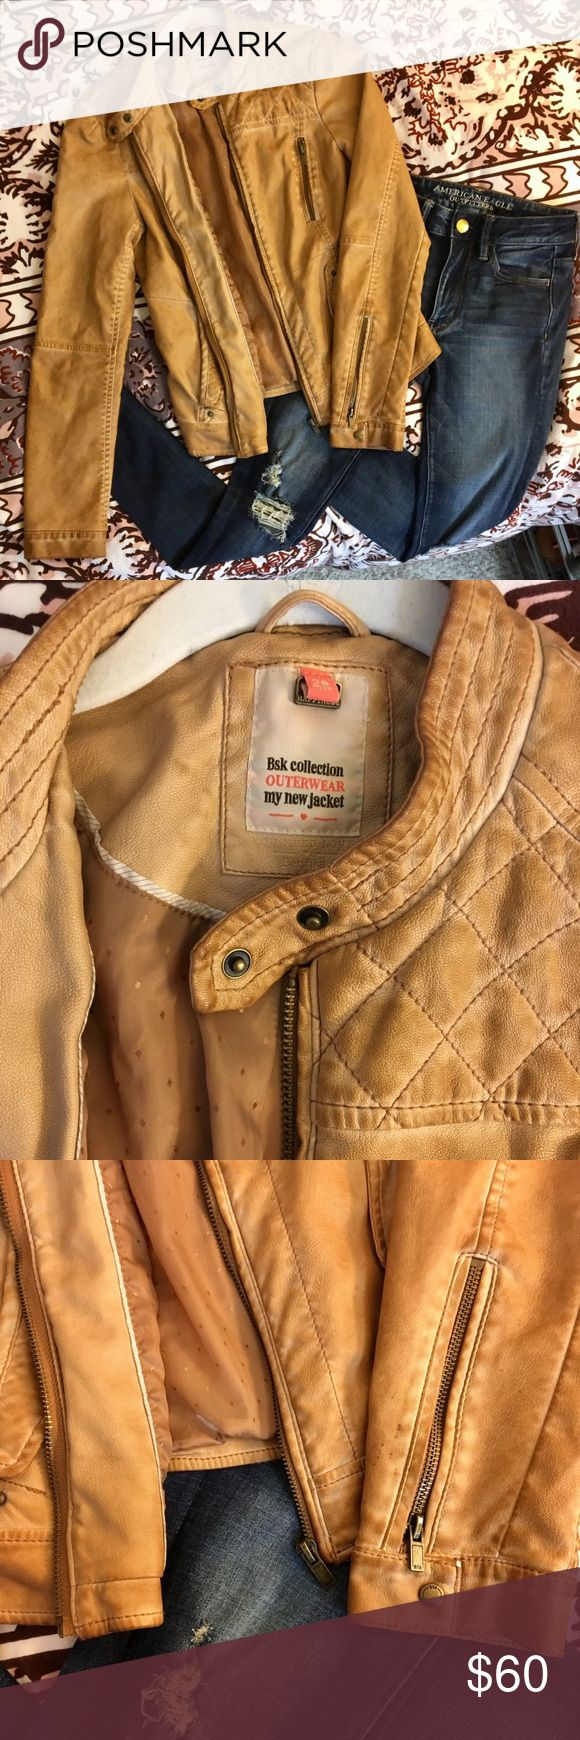 Chestnut leather jacket Gently worn, super stylish Bershka jacket 痢   So cute with a skirt or jeans, great in fall or winter weather Bershka Jackets & Coats